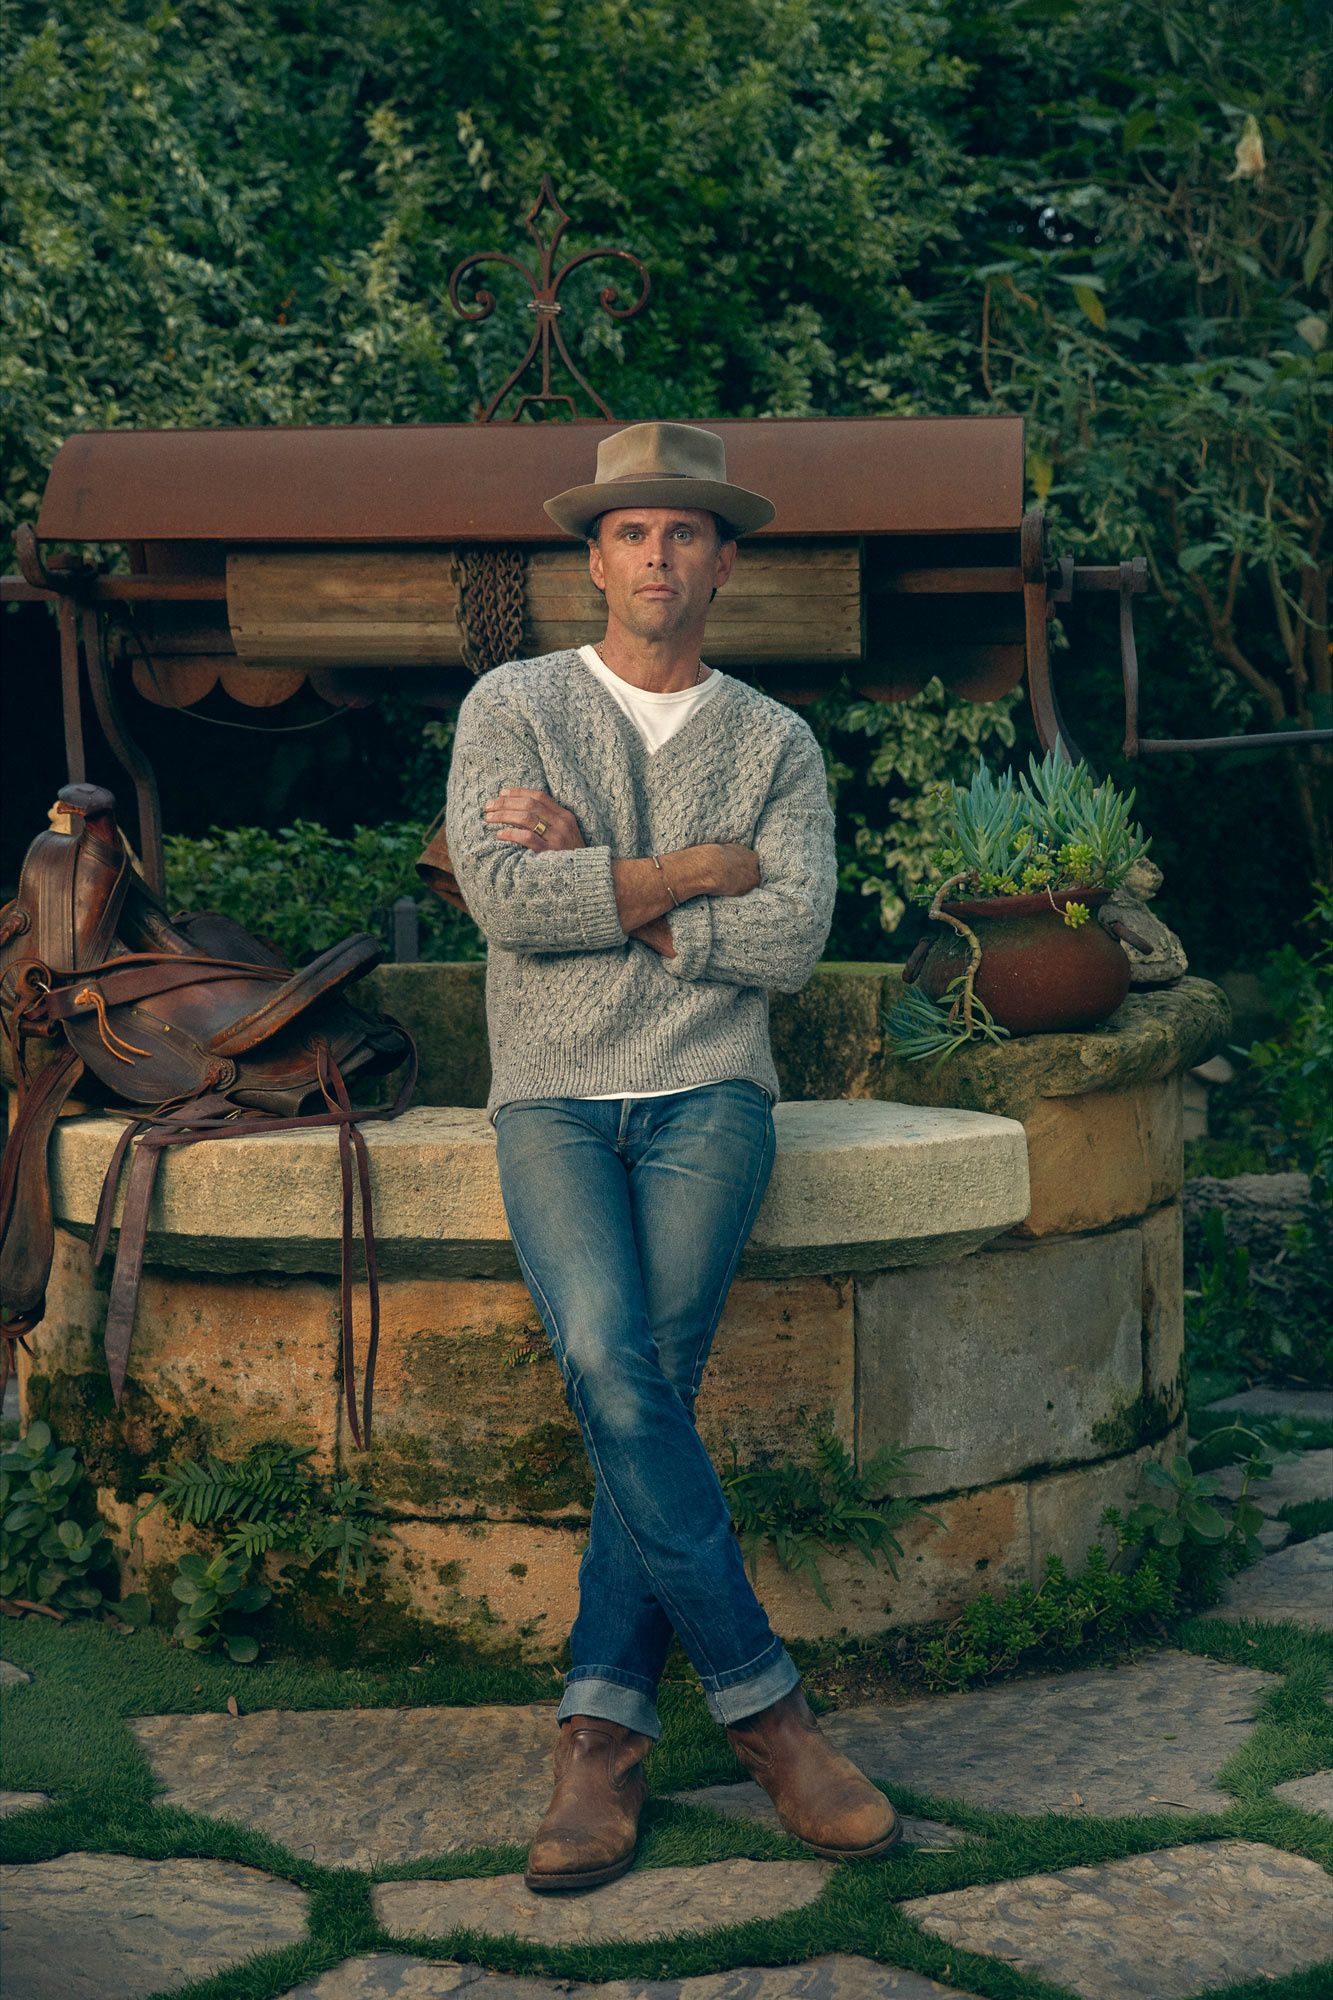 Walton Goggins leaning against a well.